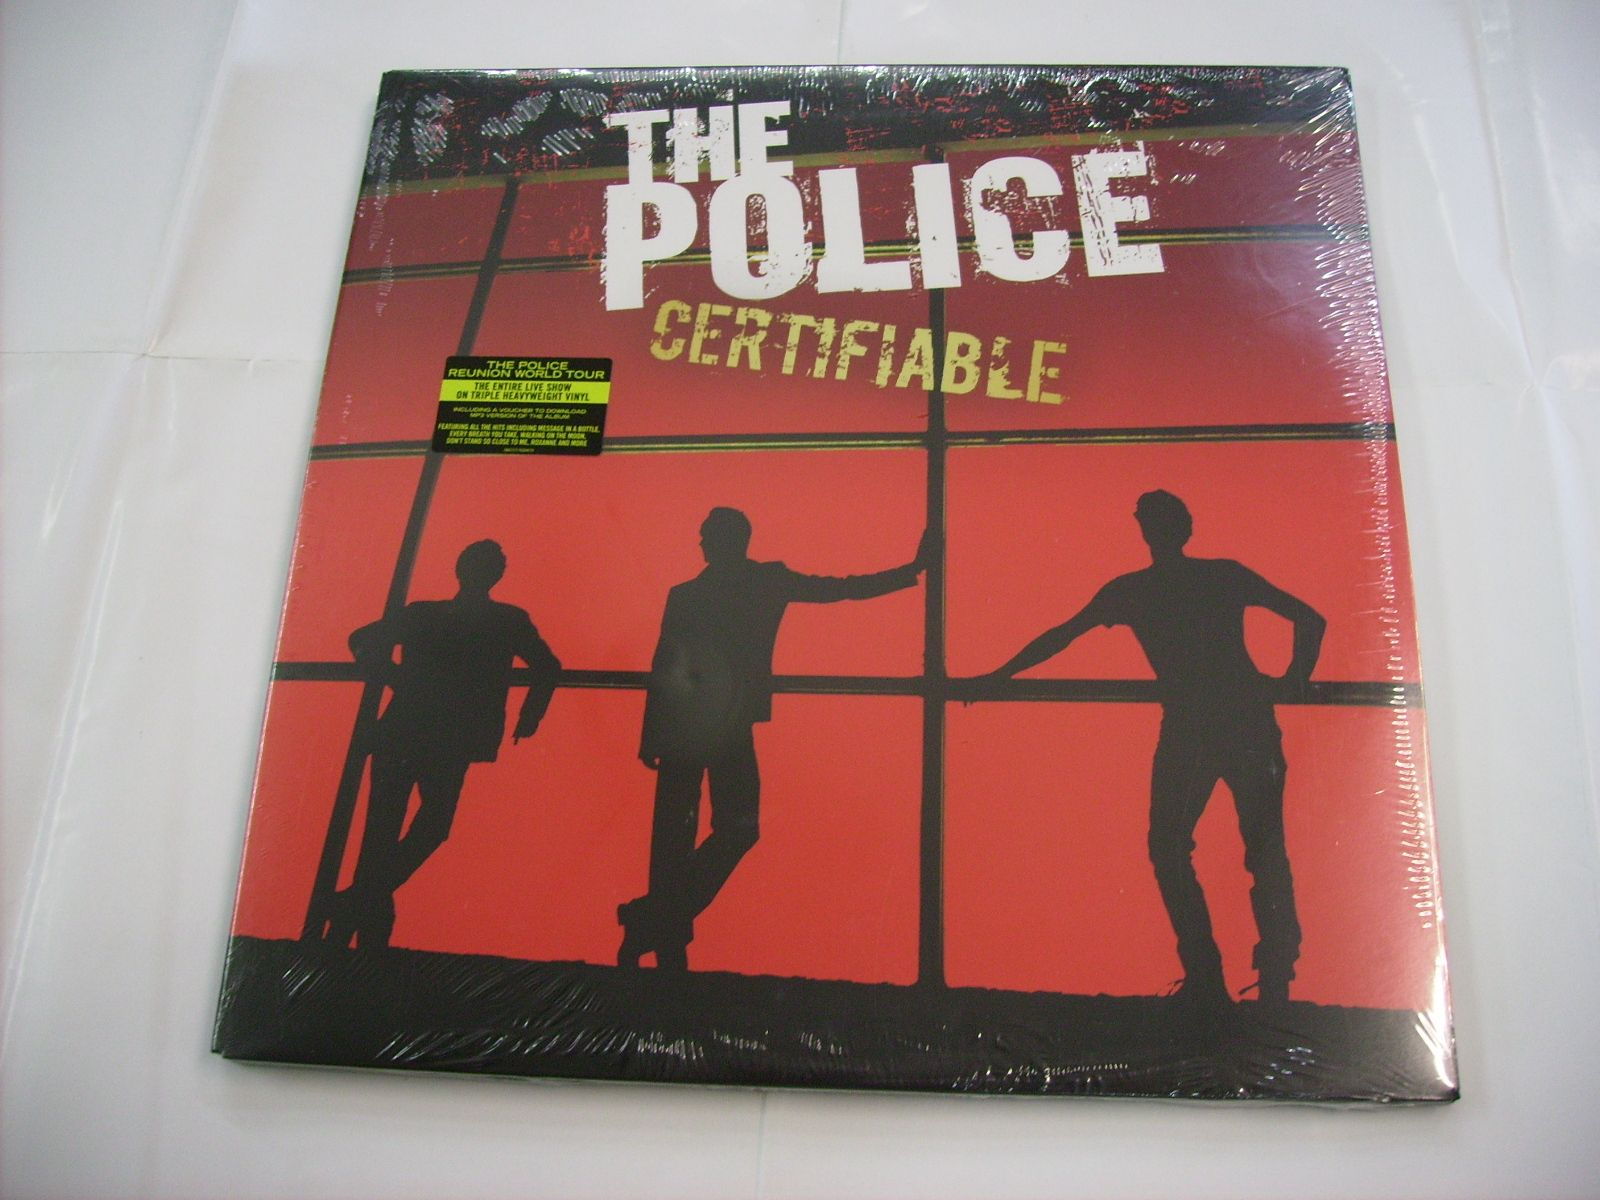 Police Certifiable Records Lps Vinyl And Cds Musicstack